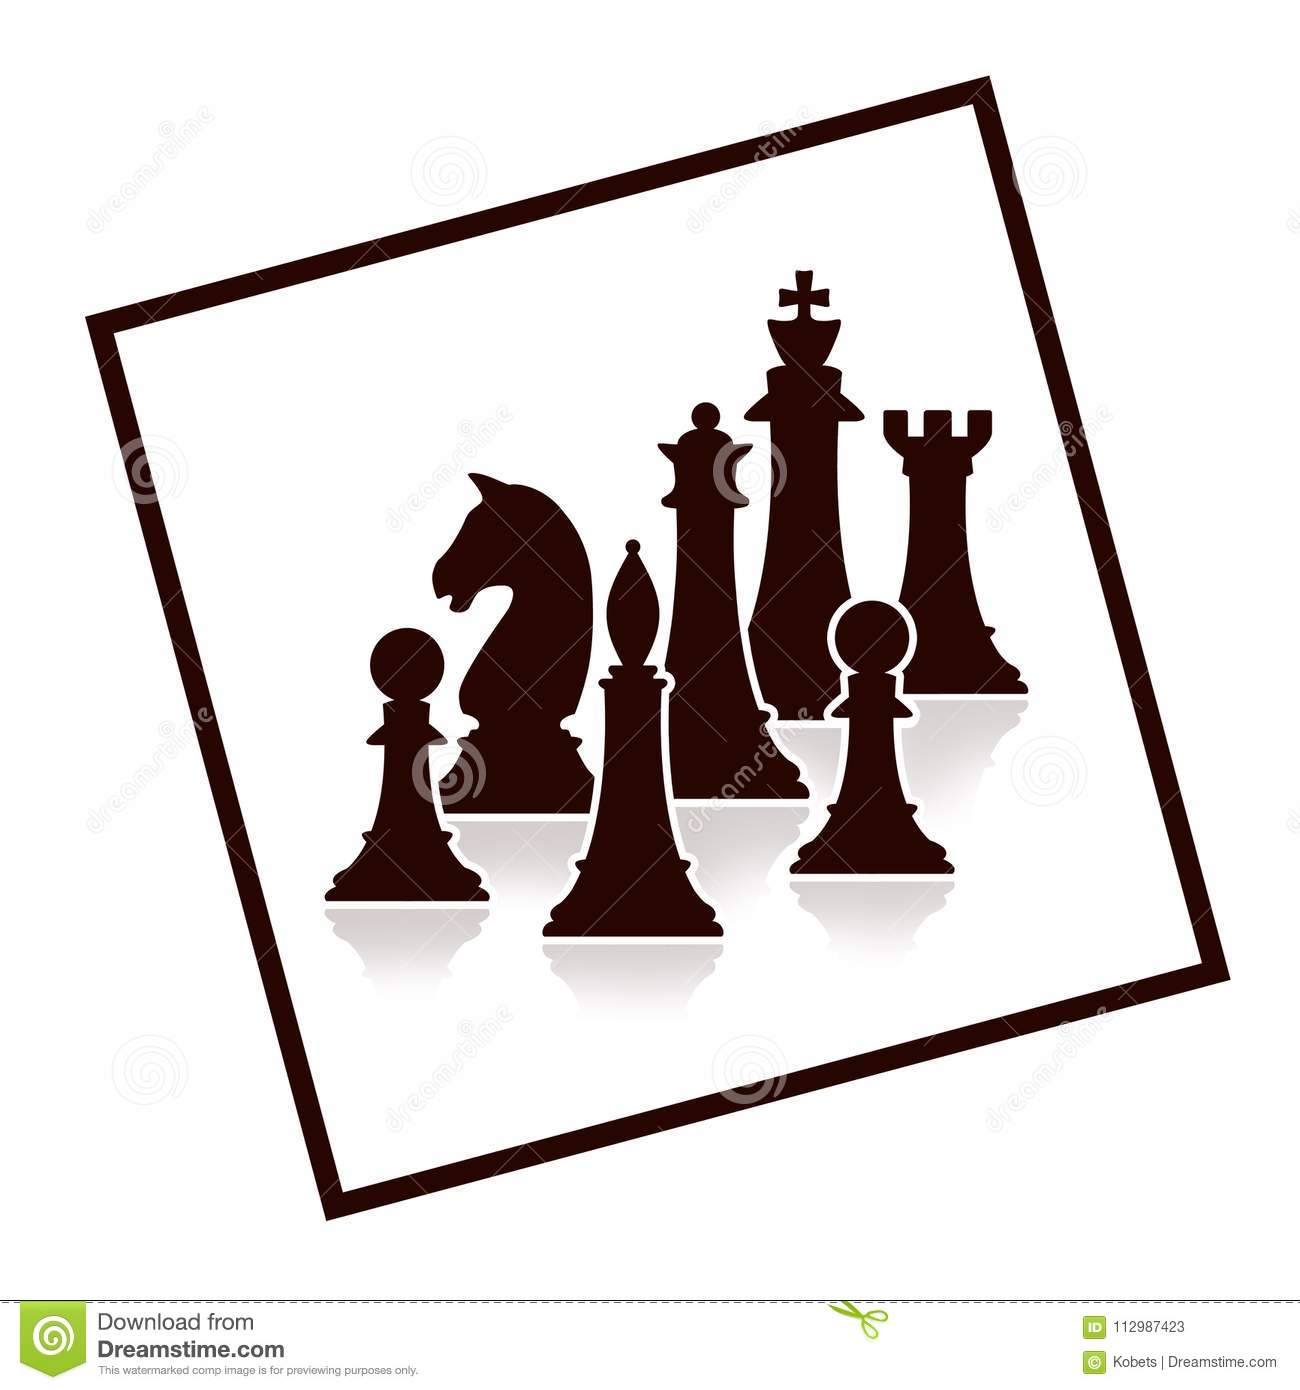 Silhouette of chess figures